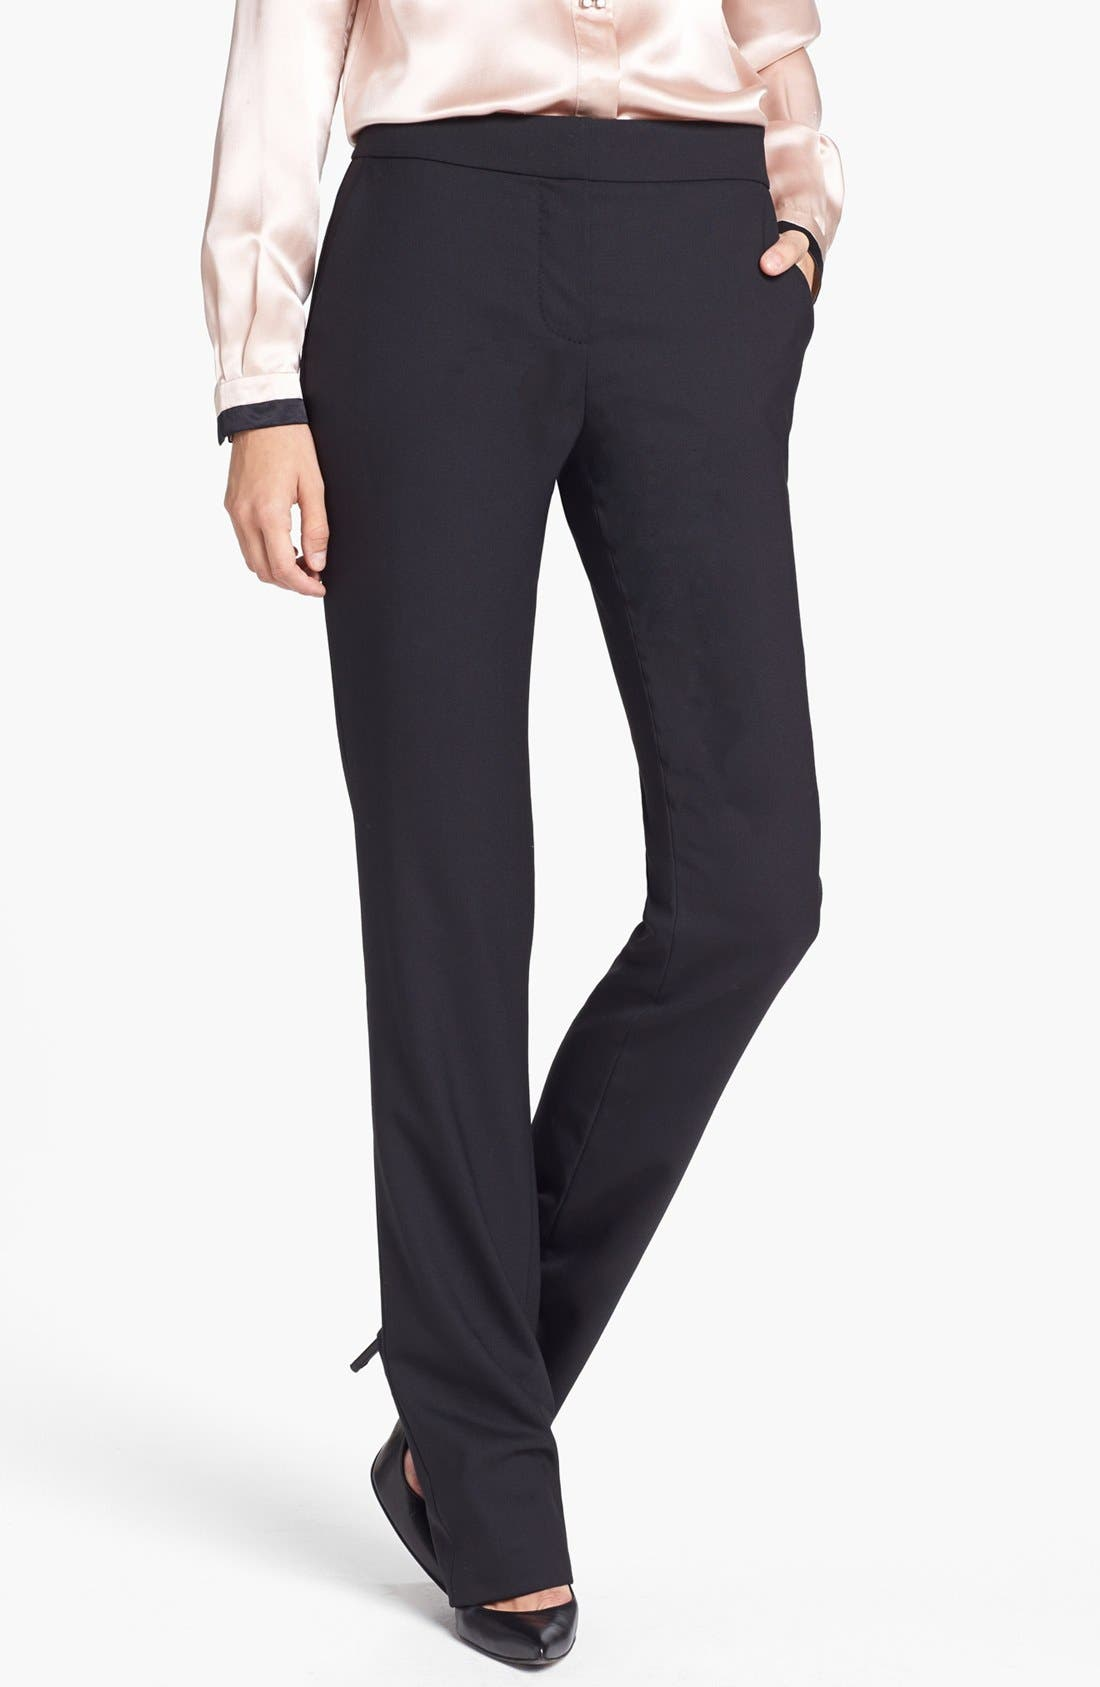 Main Image - Tory Burch 'Dolly' Stretch Wool Pants